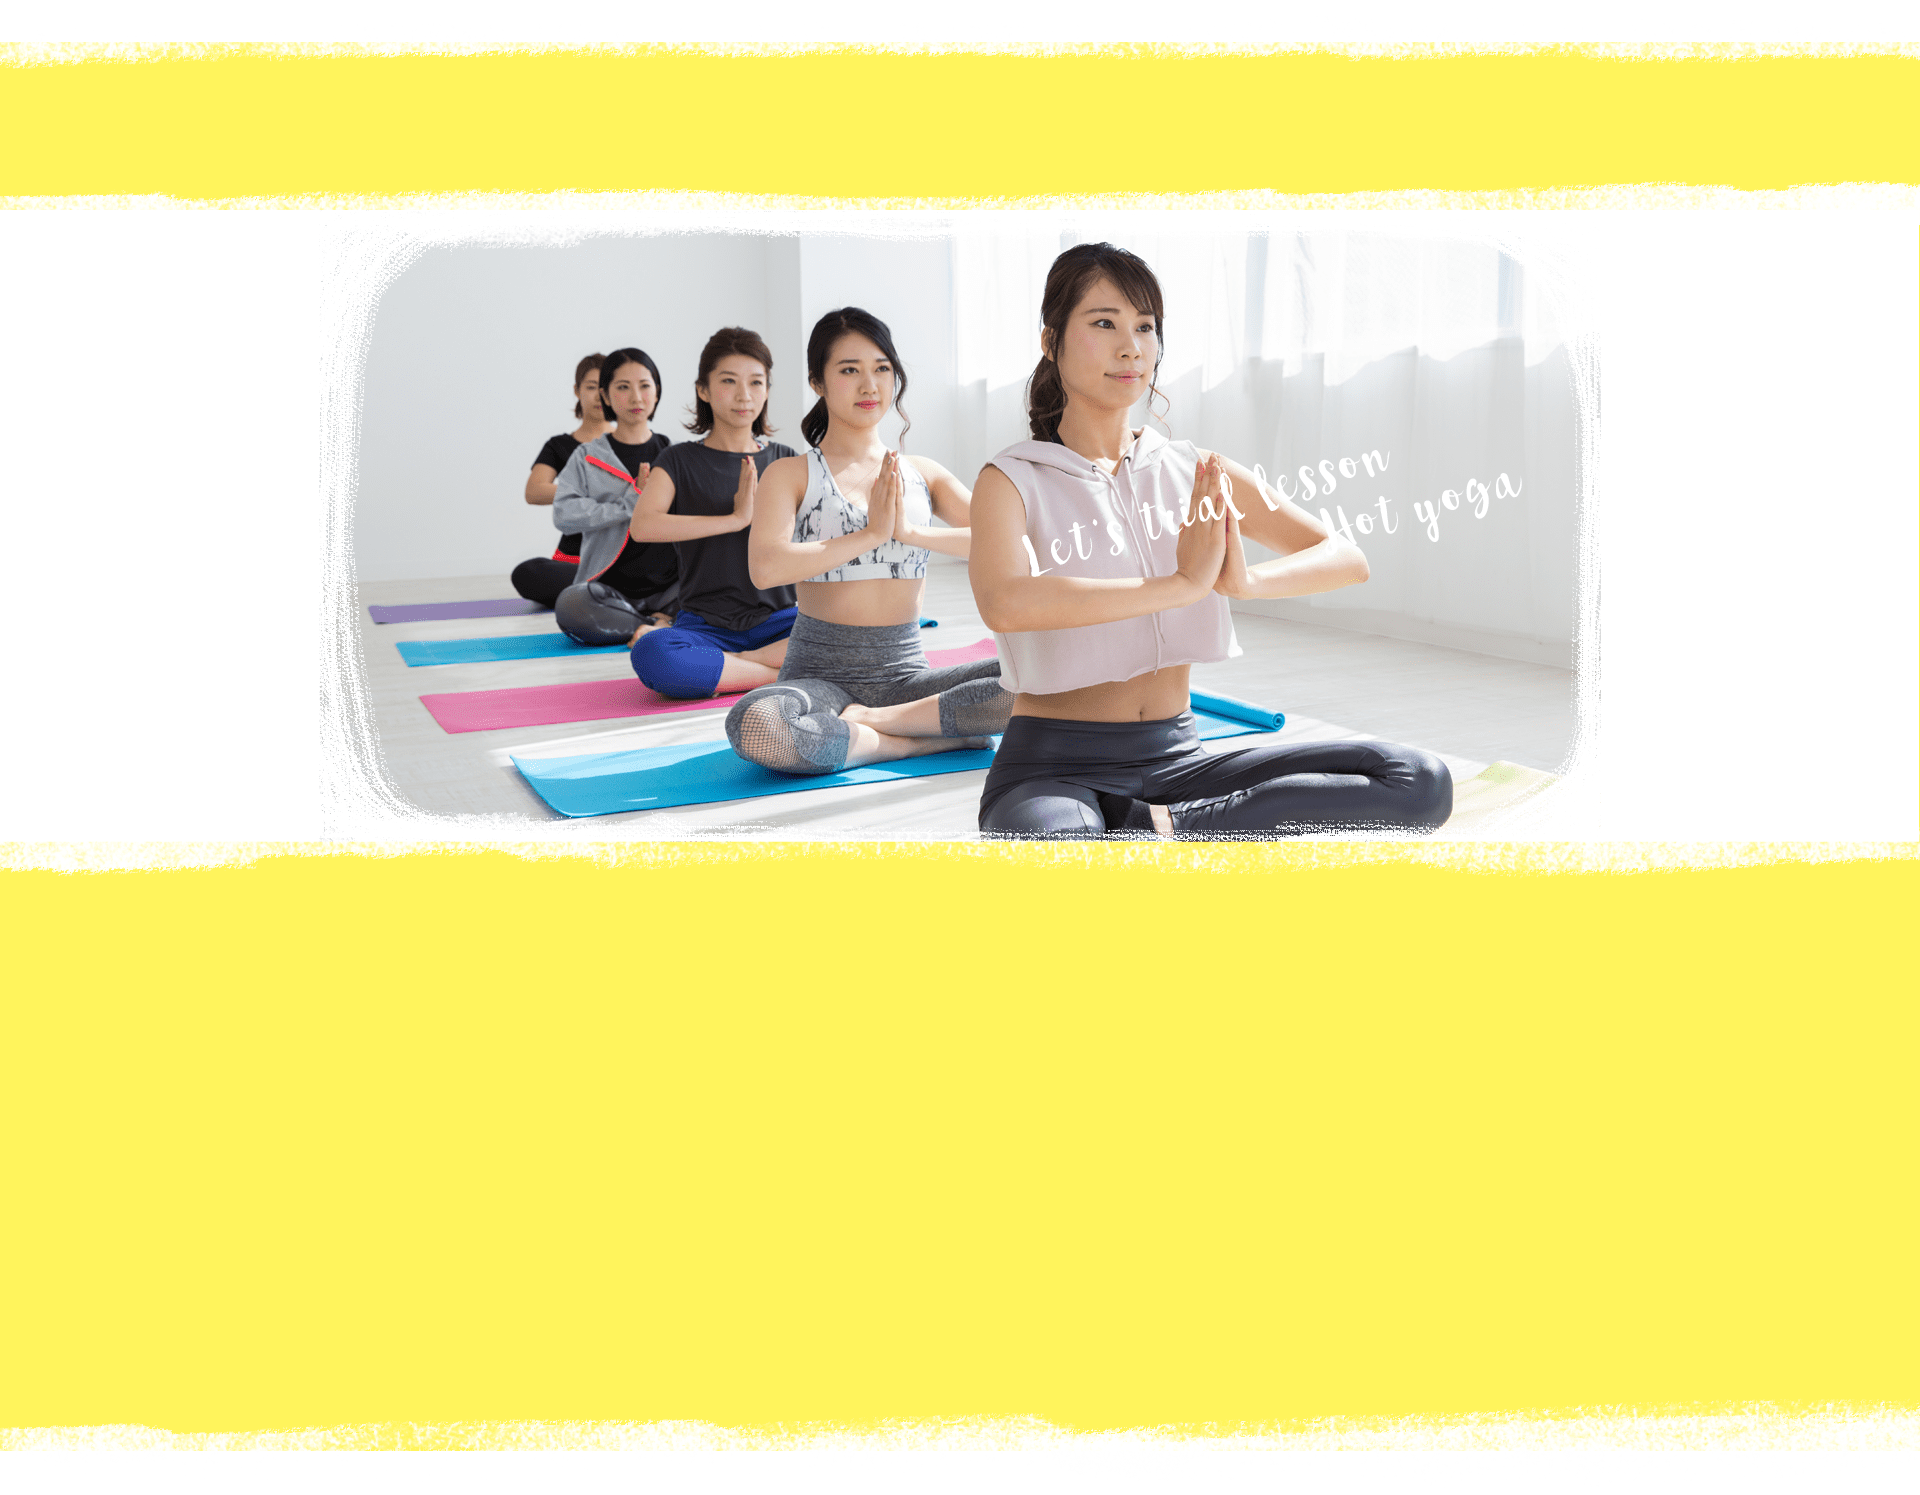 Let's trial lesson Hot yoga